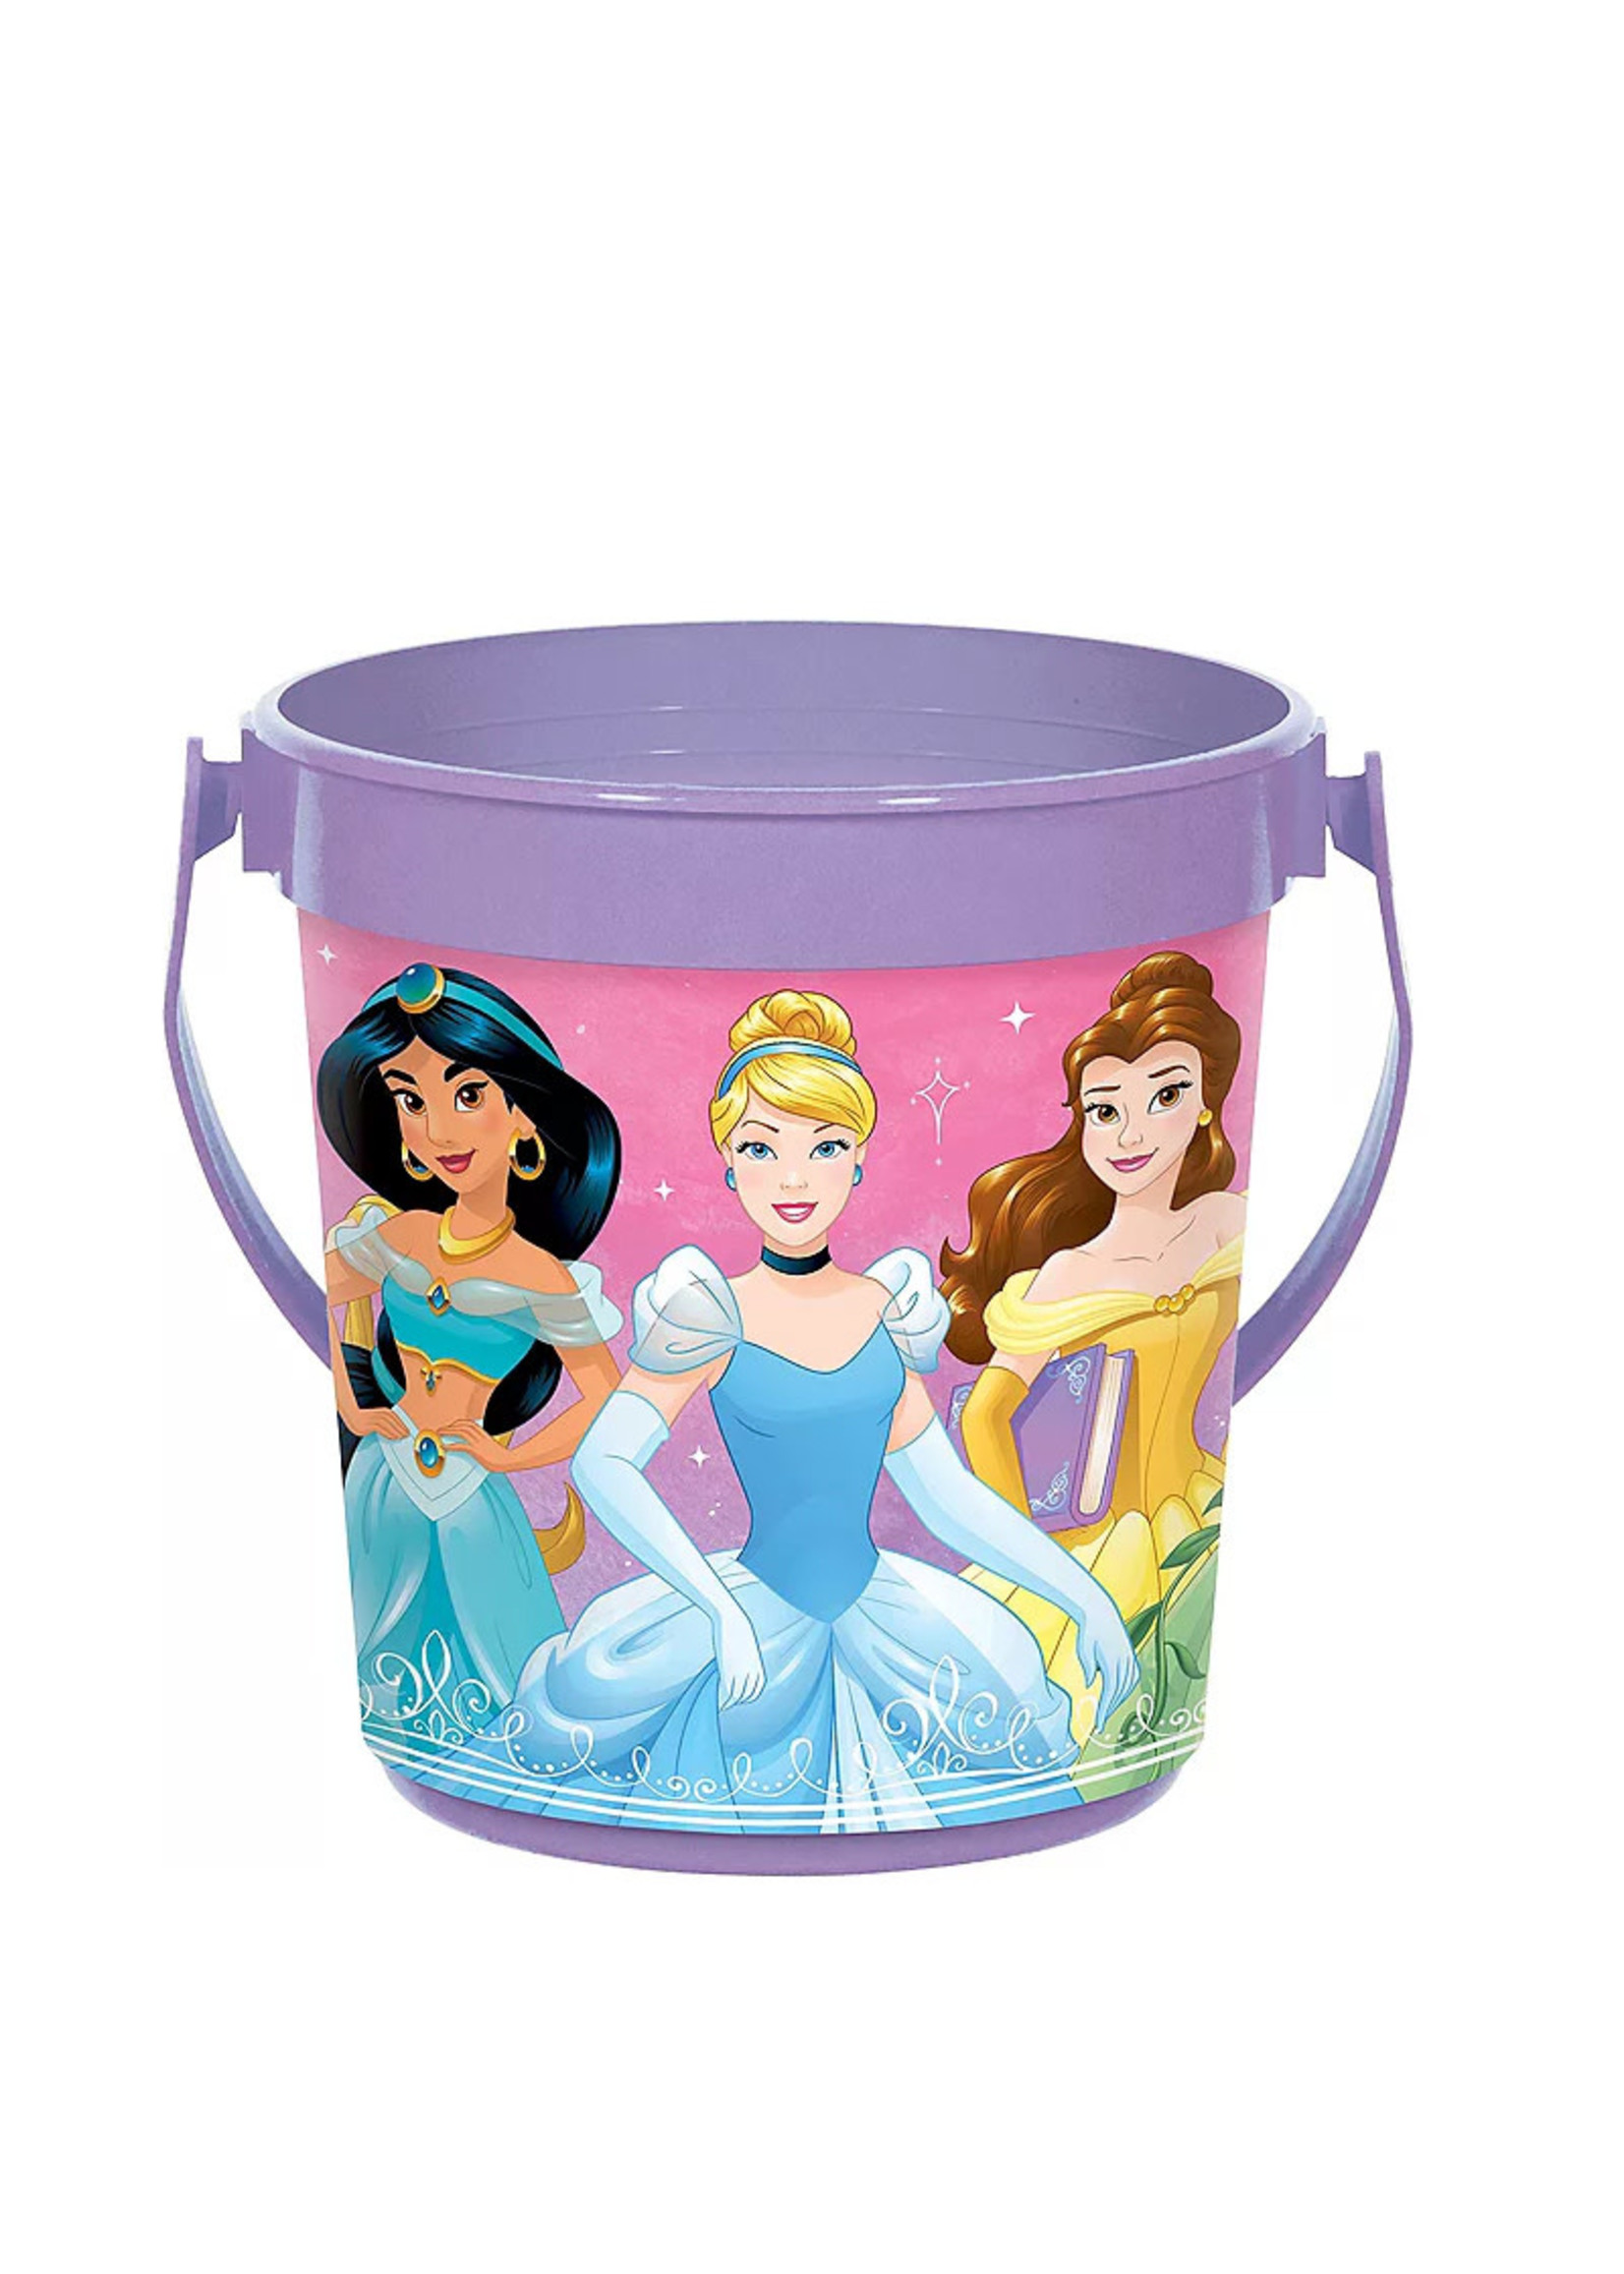 Disney Princess Once Upon a Time Favor Container